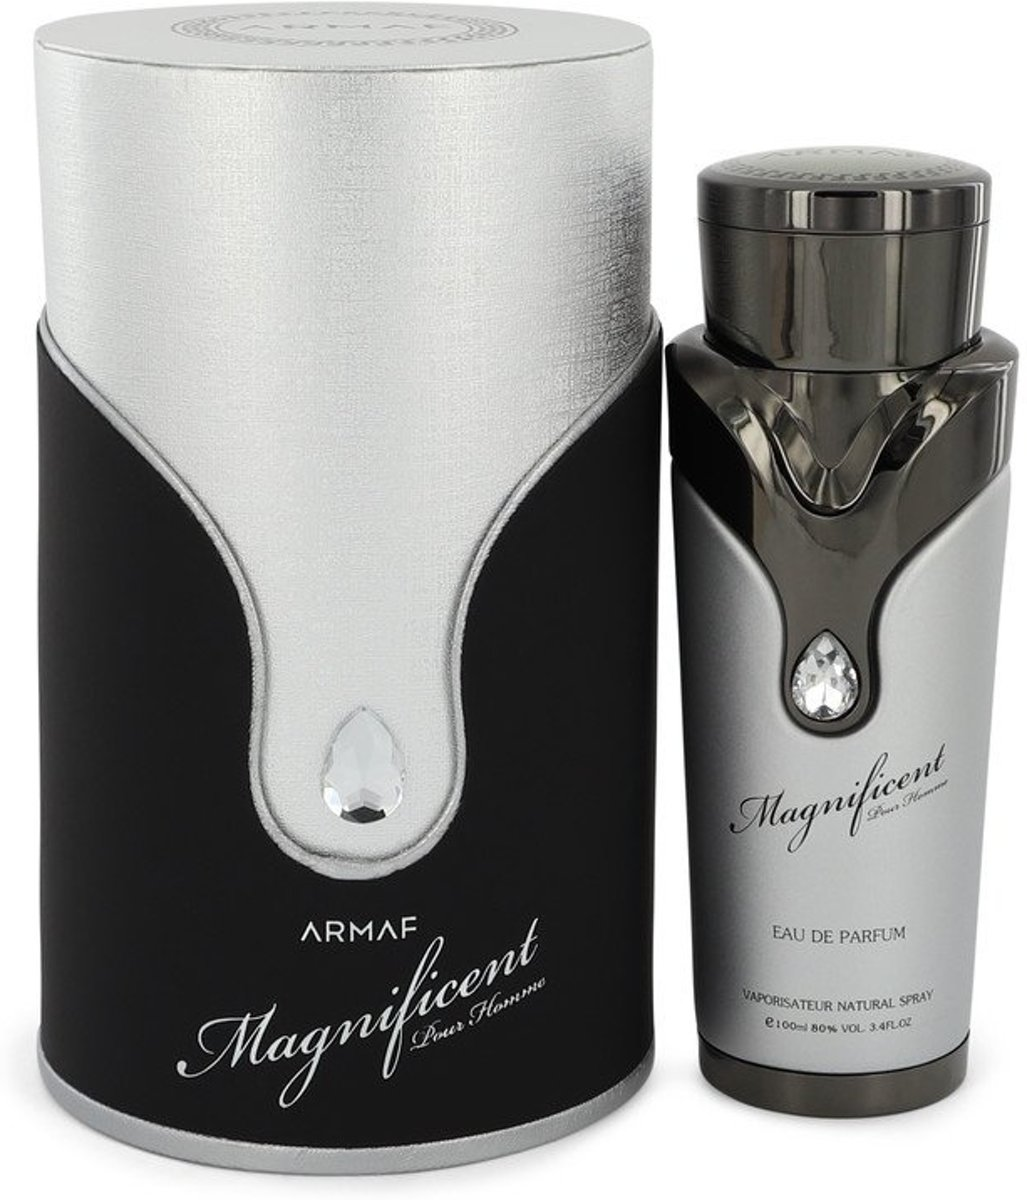 Armaf Magnificent eau de parfum spray 100 ml